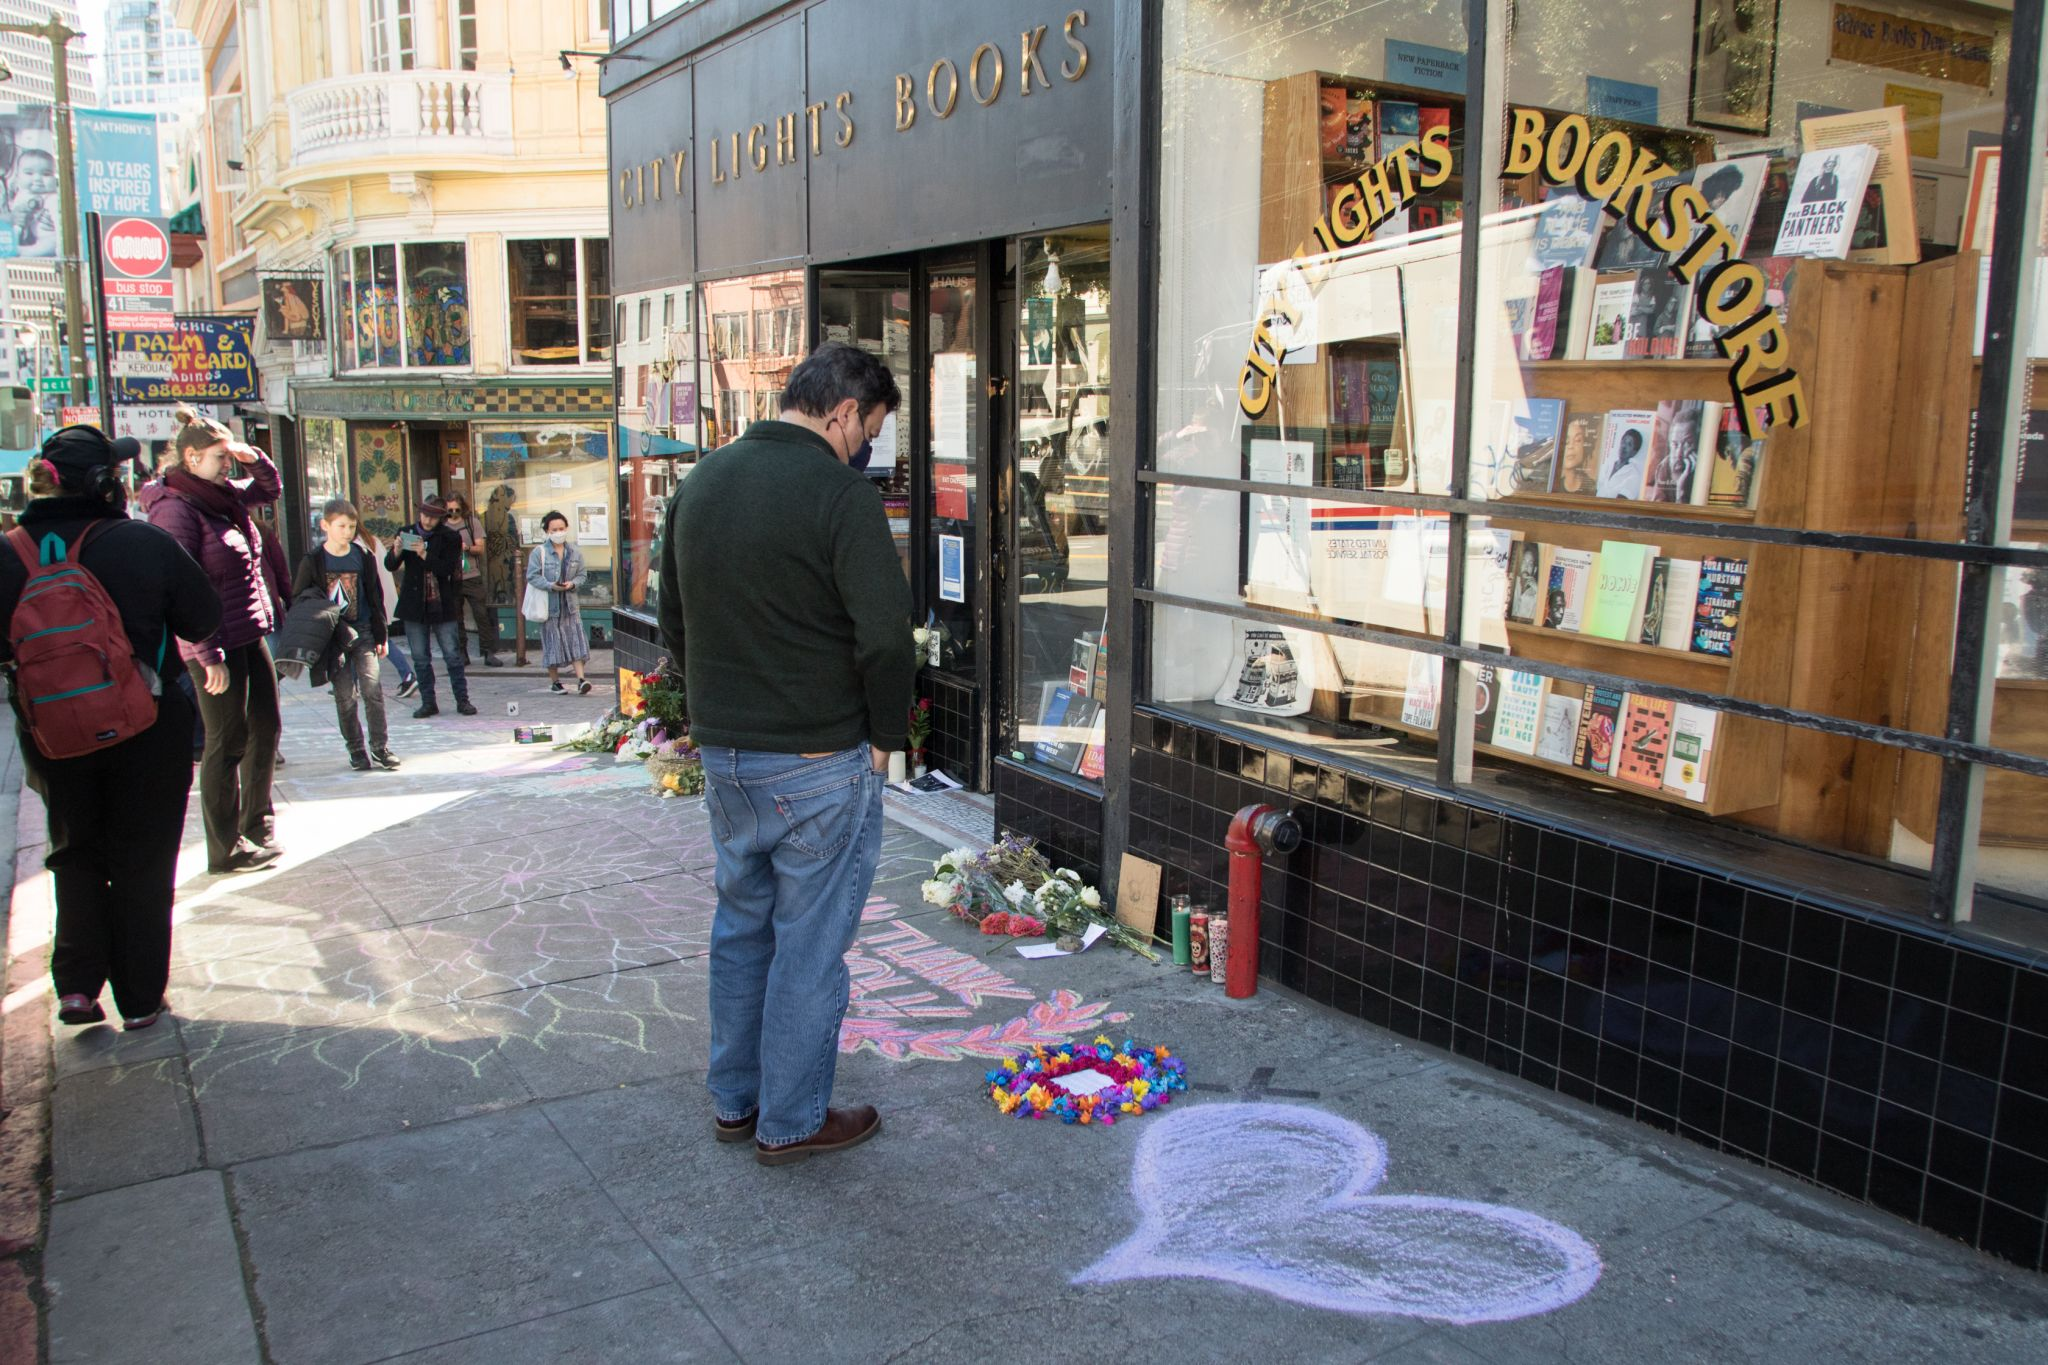 A group of people view an impromptu memorial in honor of Lawrence Ferlinghetti that appeared overnight in front of City Lights Booksellers & Publishers in San Francisco on Feb. 24, 2021.